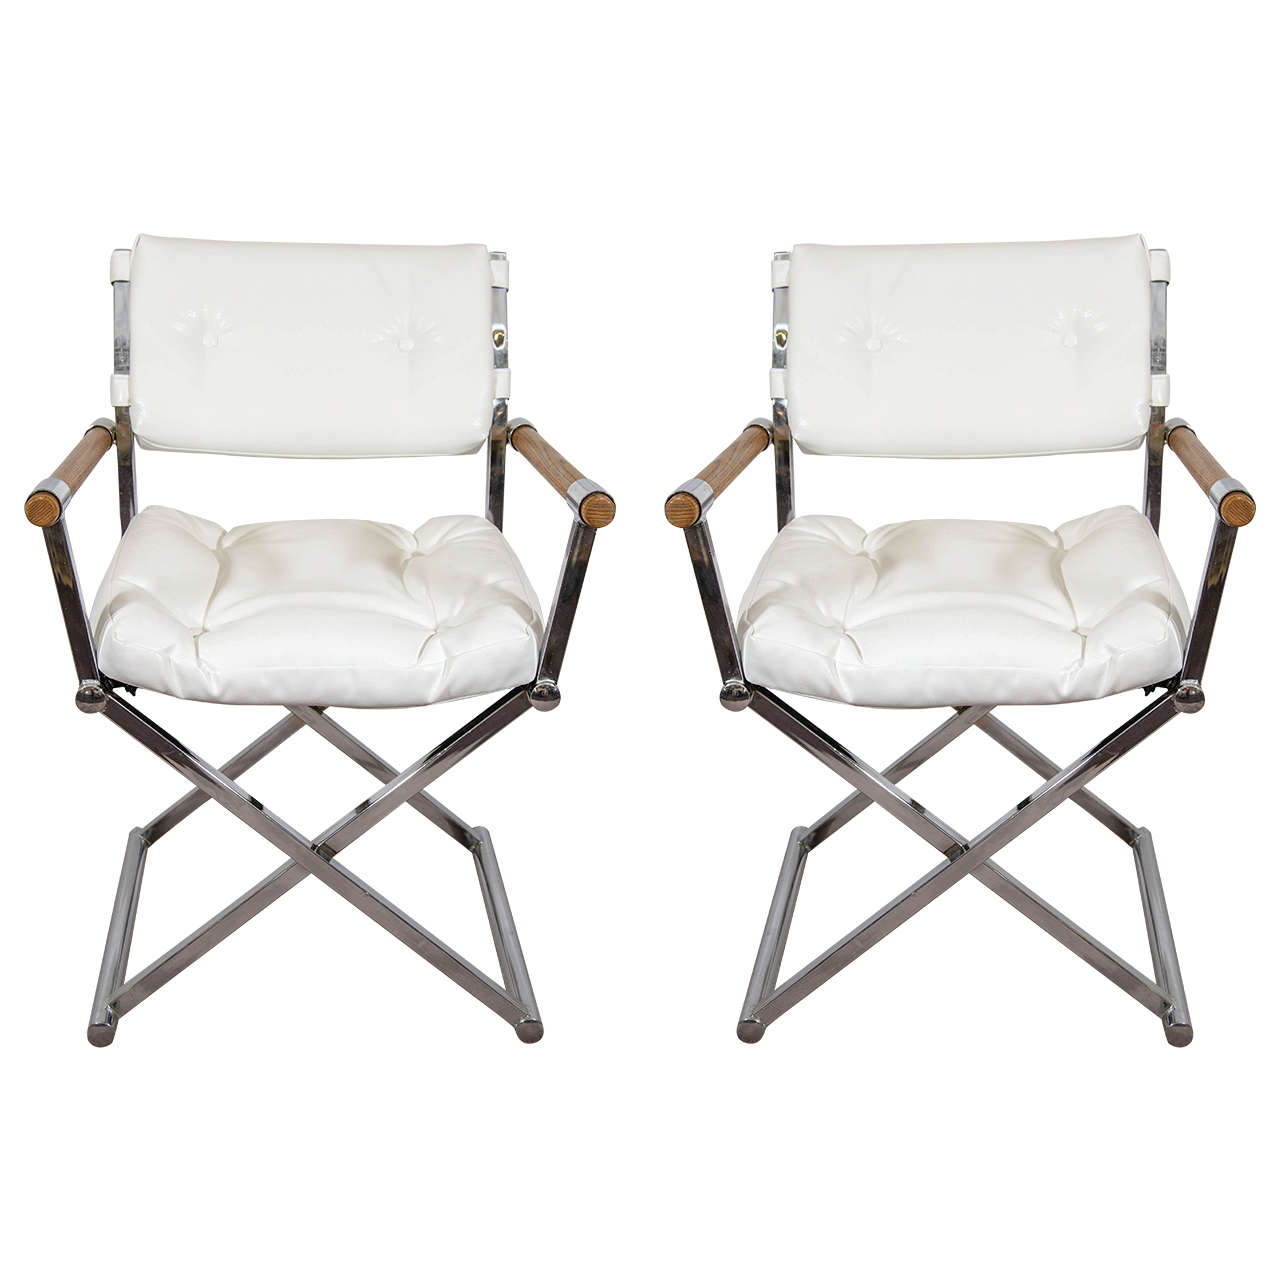 directors chair white outdoor pool lounge chairs a midcentury pair of leather director s attributed to milo baughman for sale